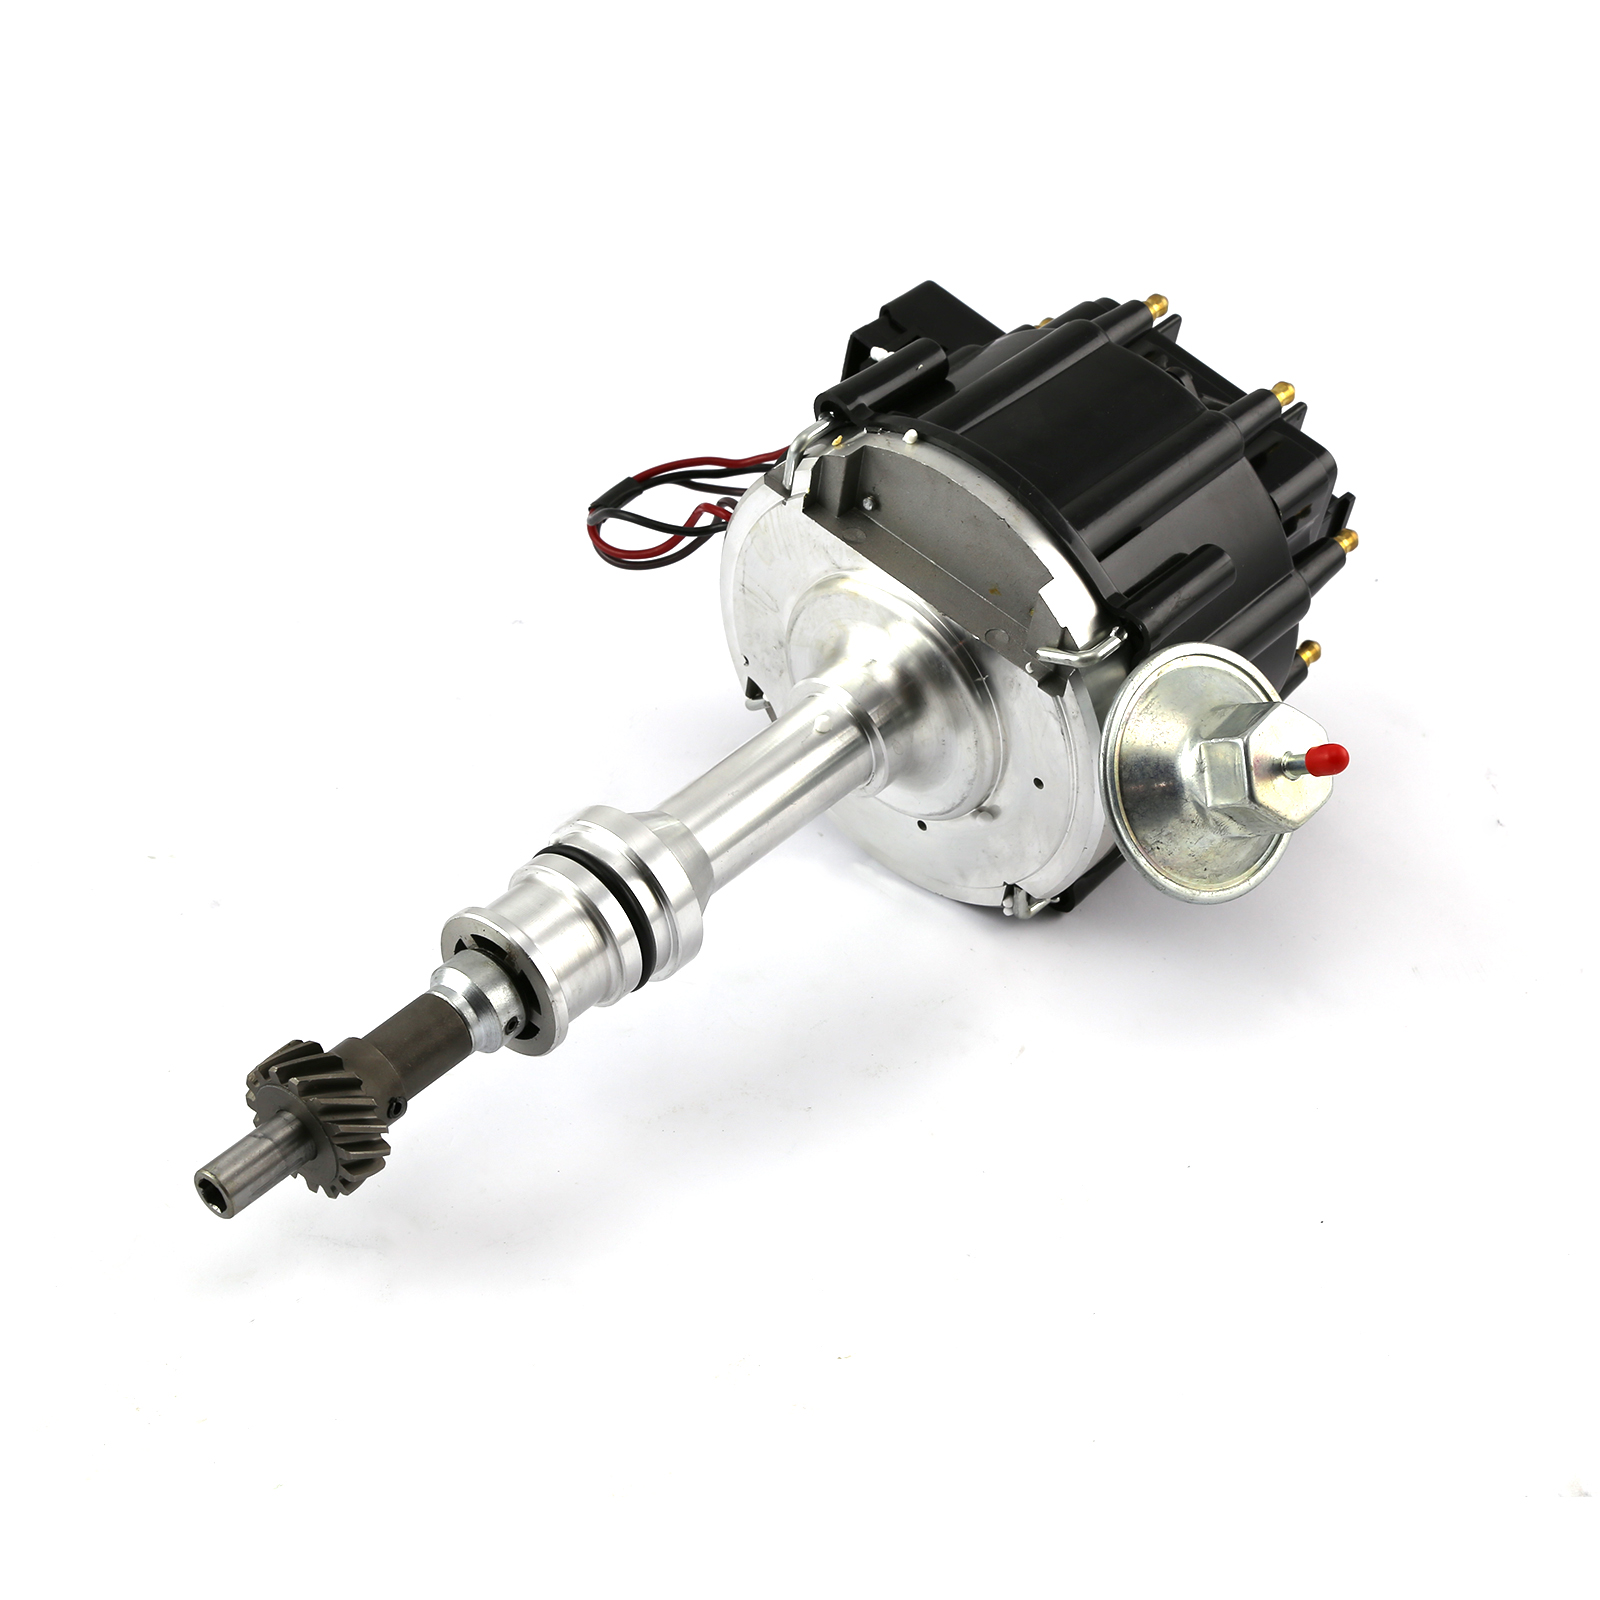 Ford 302 351C Cleveland 460 Early 6000 Series 65K Coil HEI Distributor [Black]